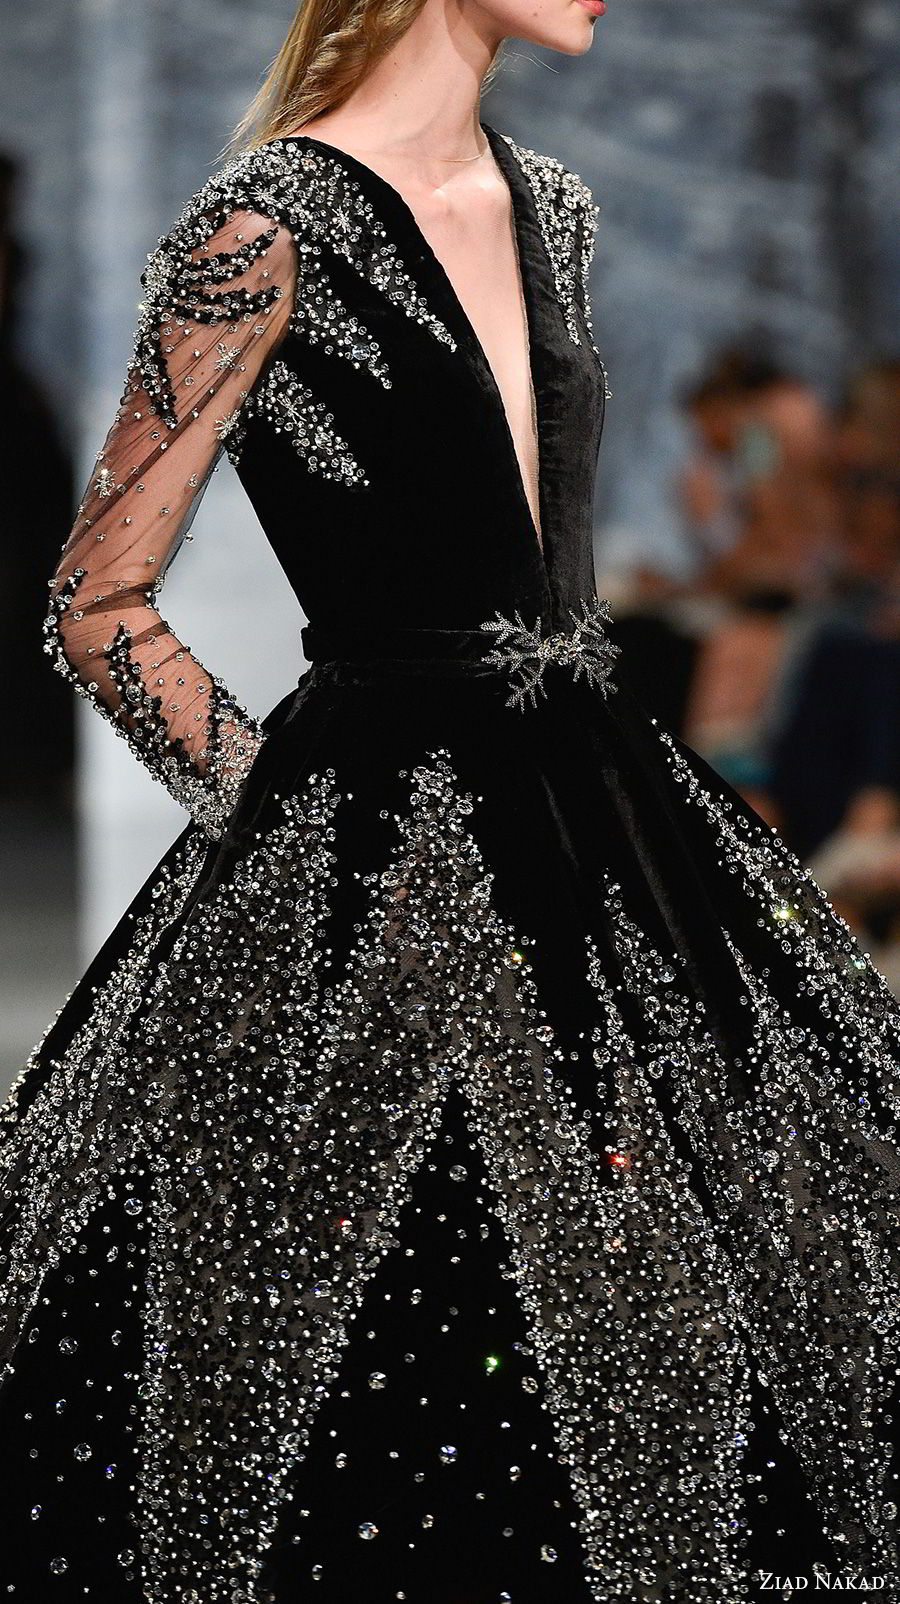 ziad nakad couture fall 2017 long sleeves deep plunging v neck full embellishment elegant glamorous black ball gown a line wedding dress pockets open v back chapel train (3) zsdv